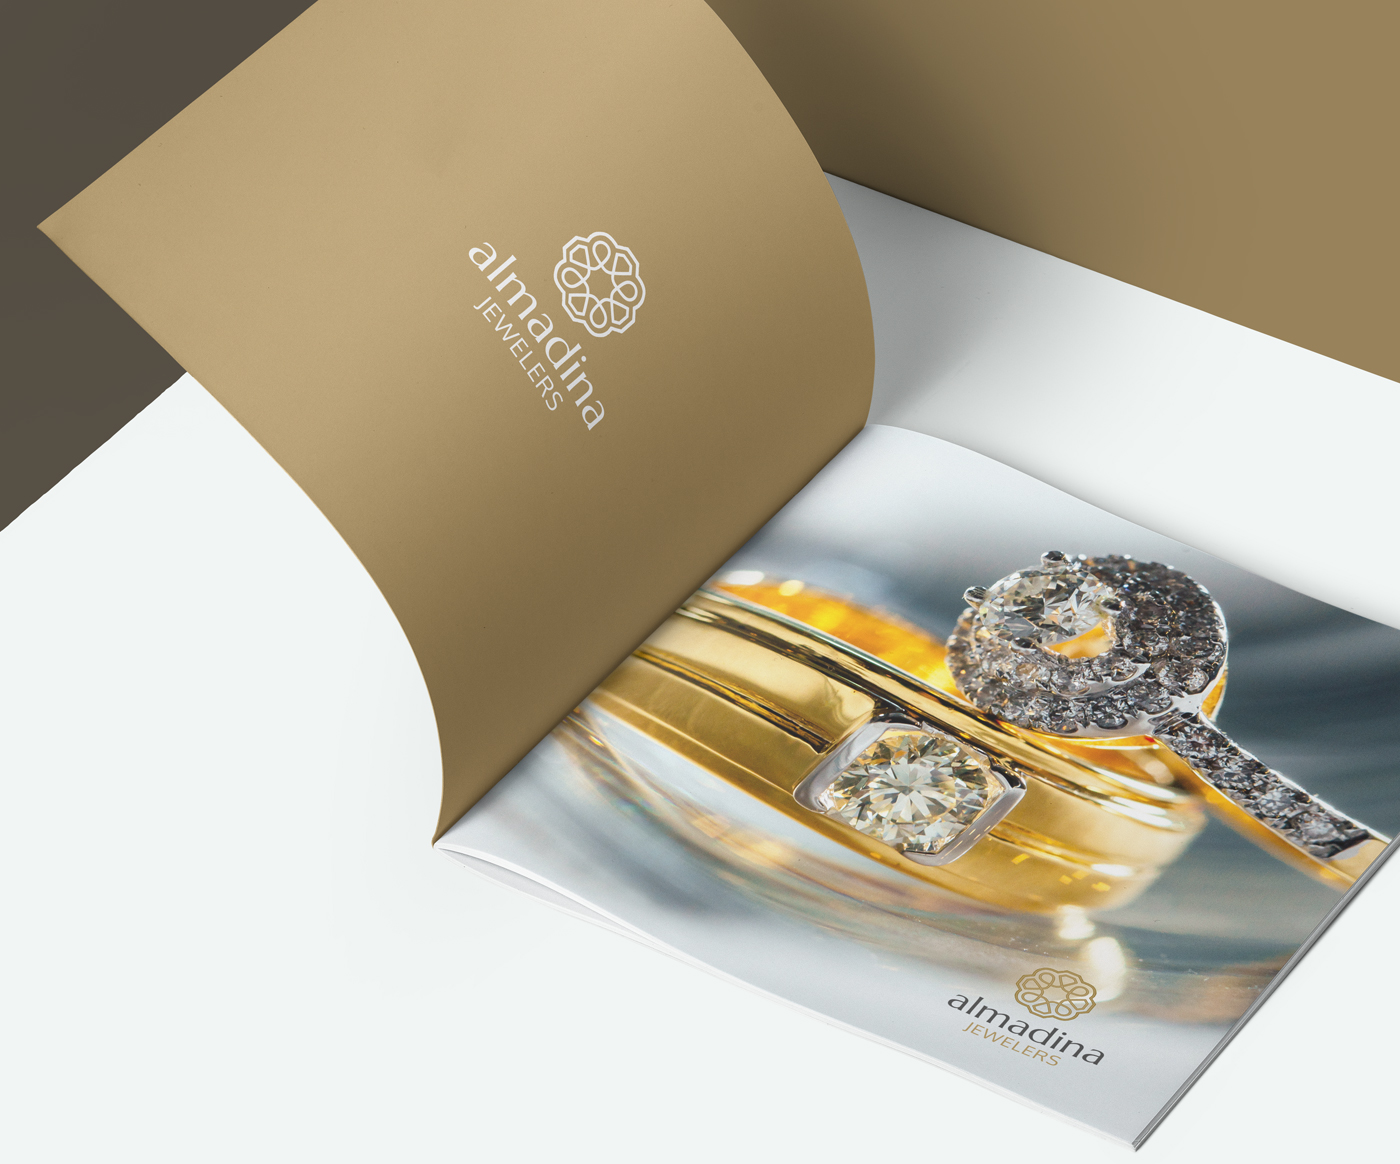 Al-Madina Jewelers - Print Catalog Design